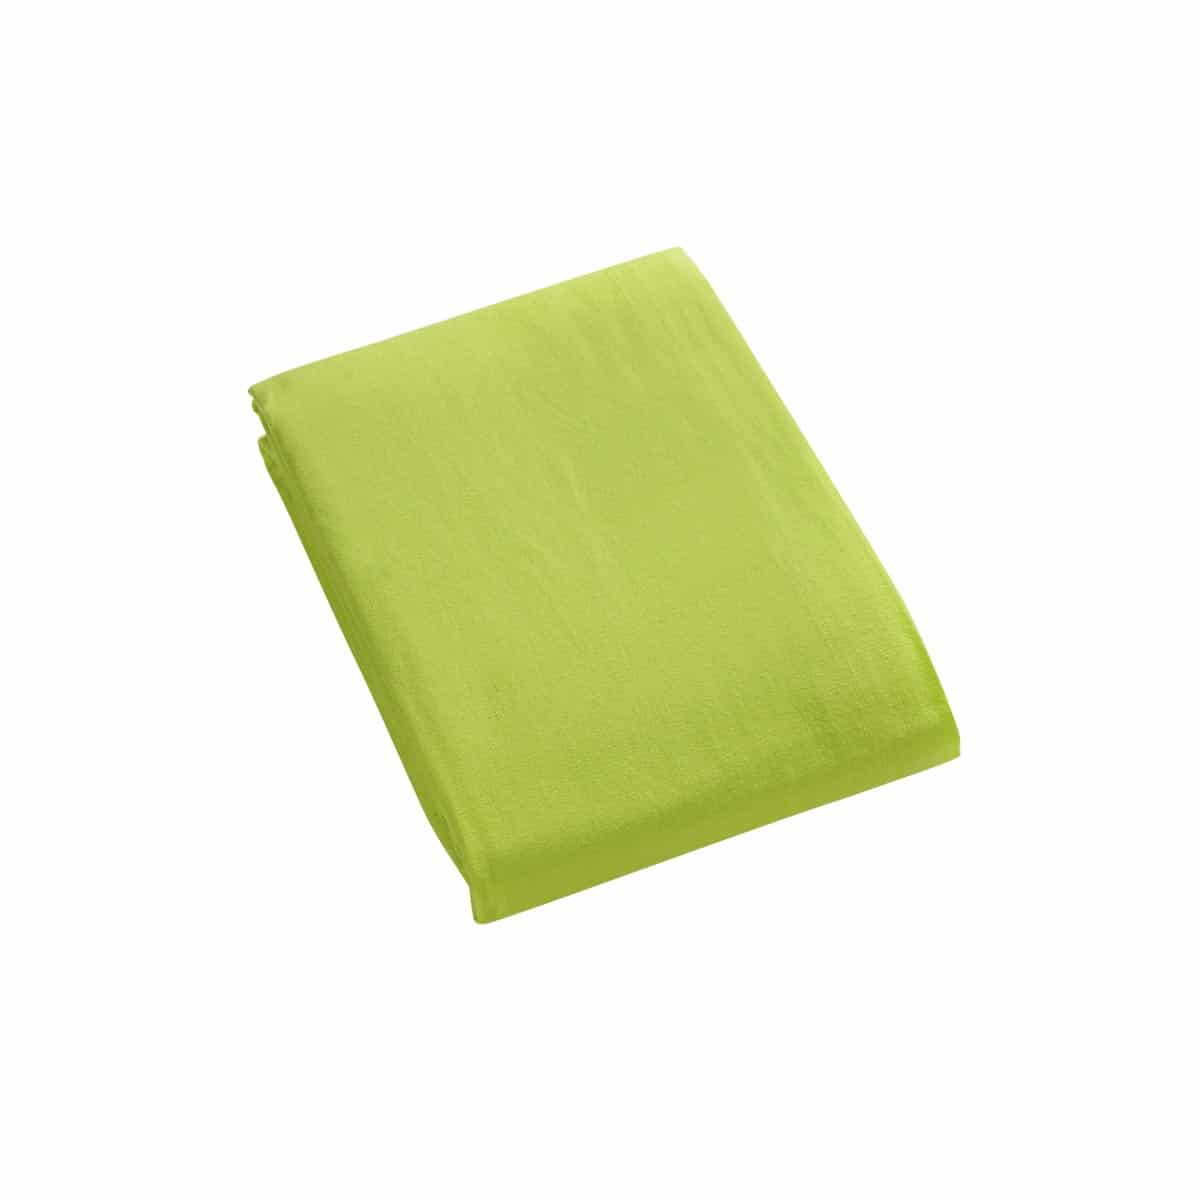 nappe de table sharp citrus serax vert citron zeeloft